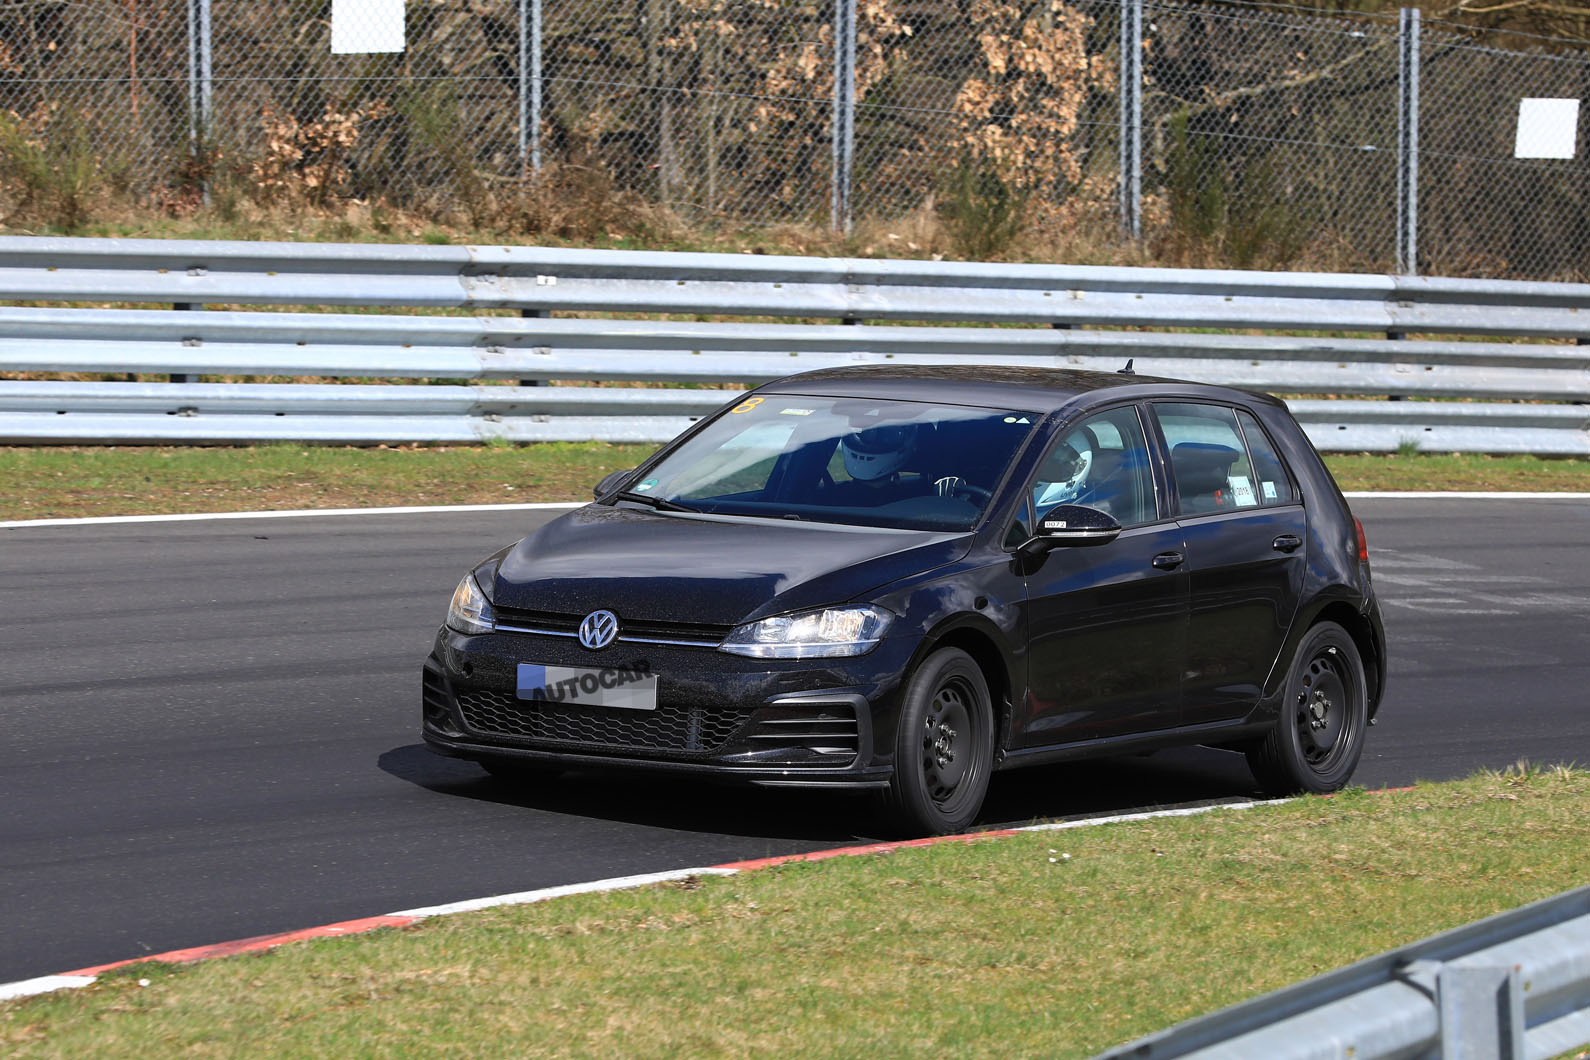 hight resolution of 2019 volkswagen golf mk8 first pictures of mule show new cabin tech autocar